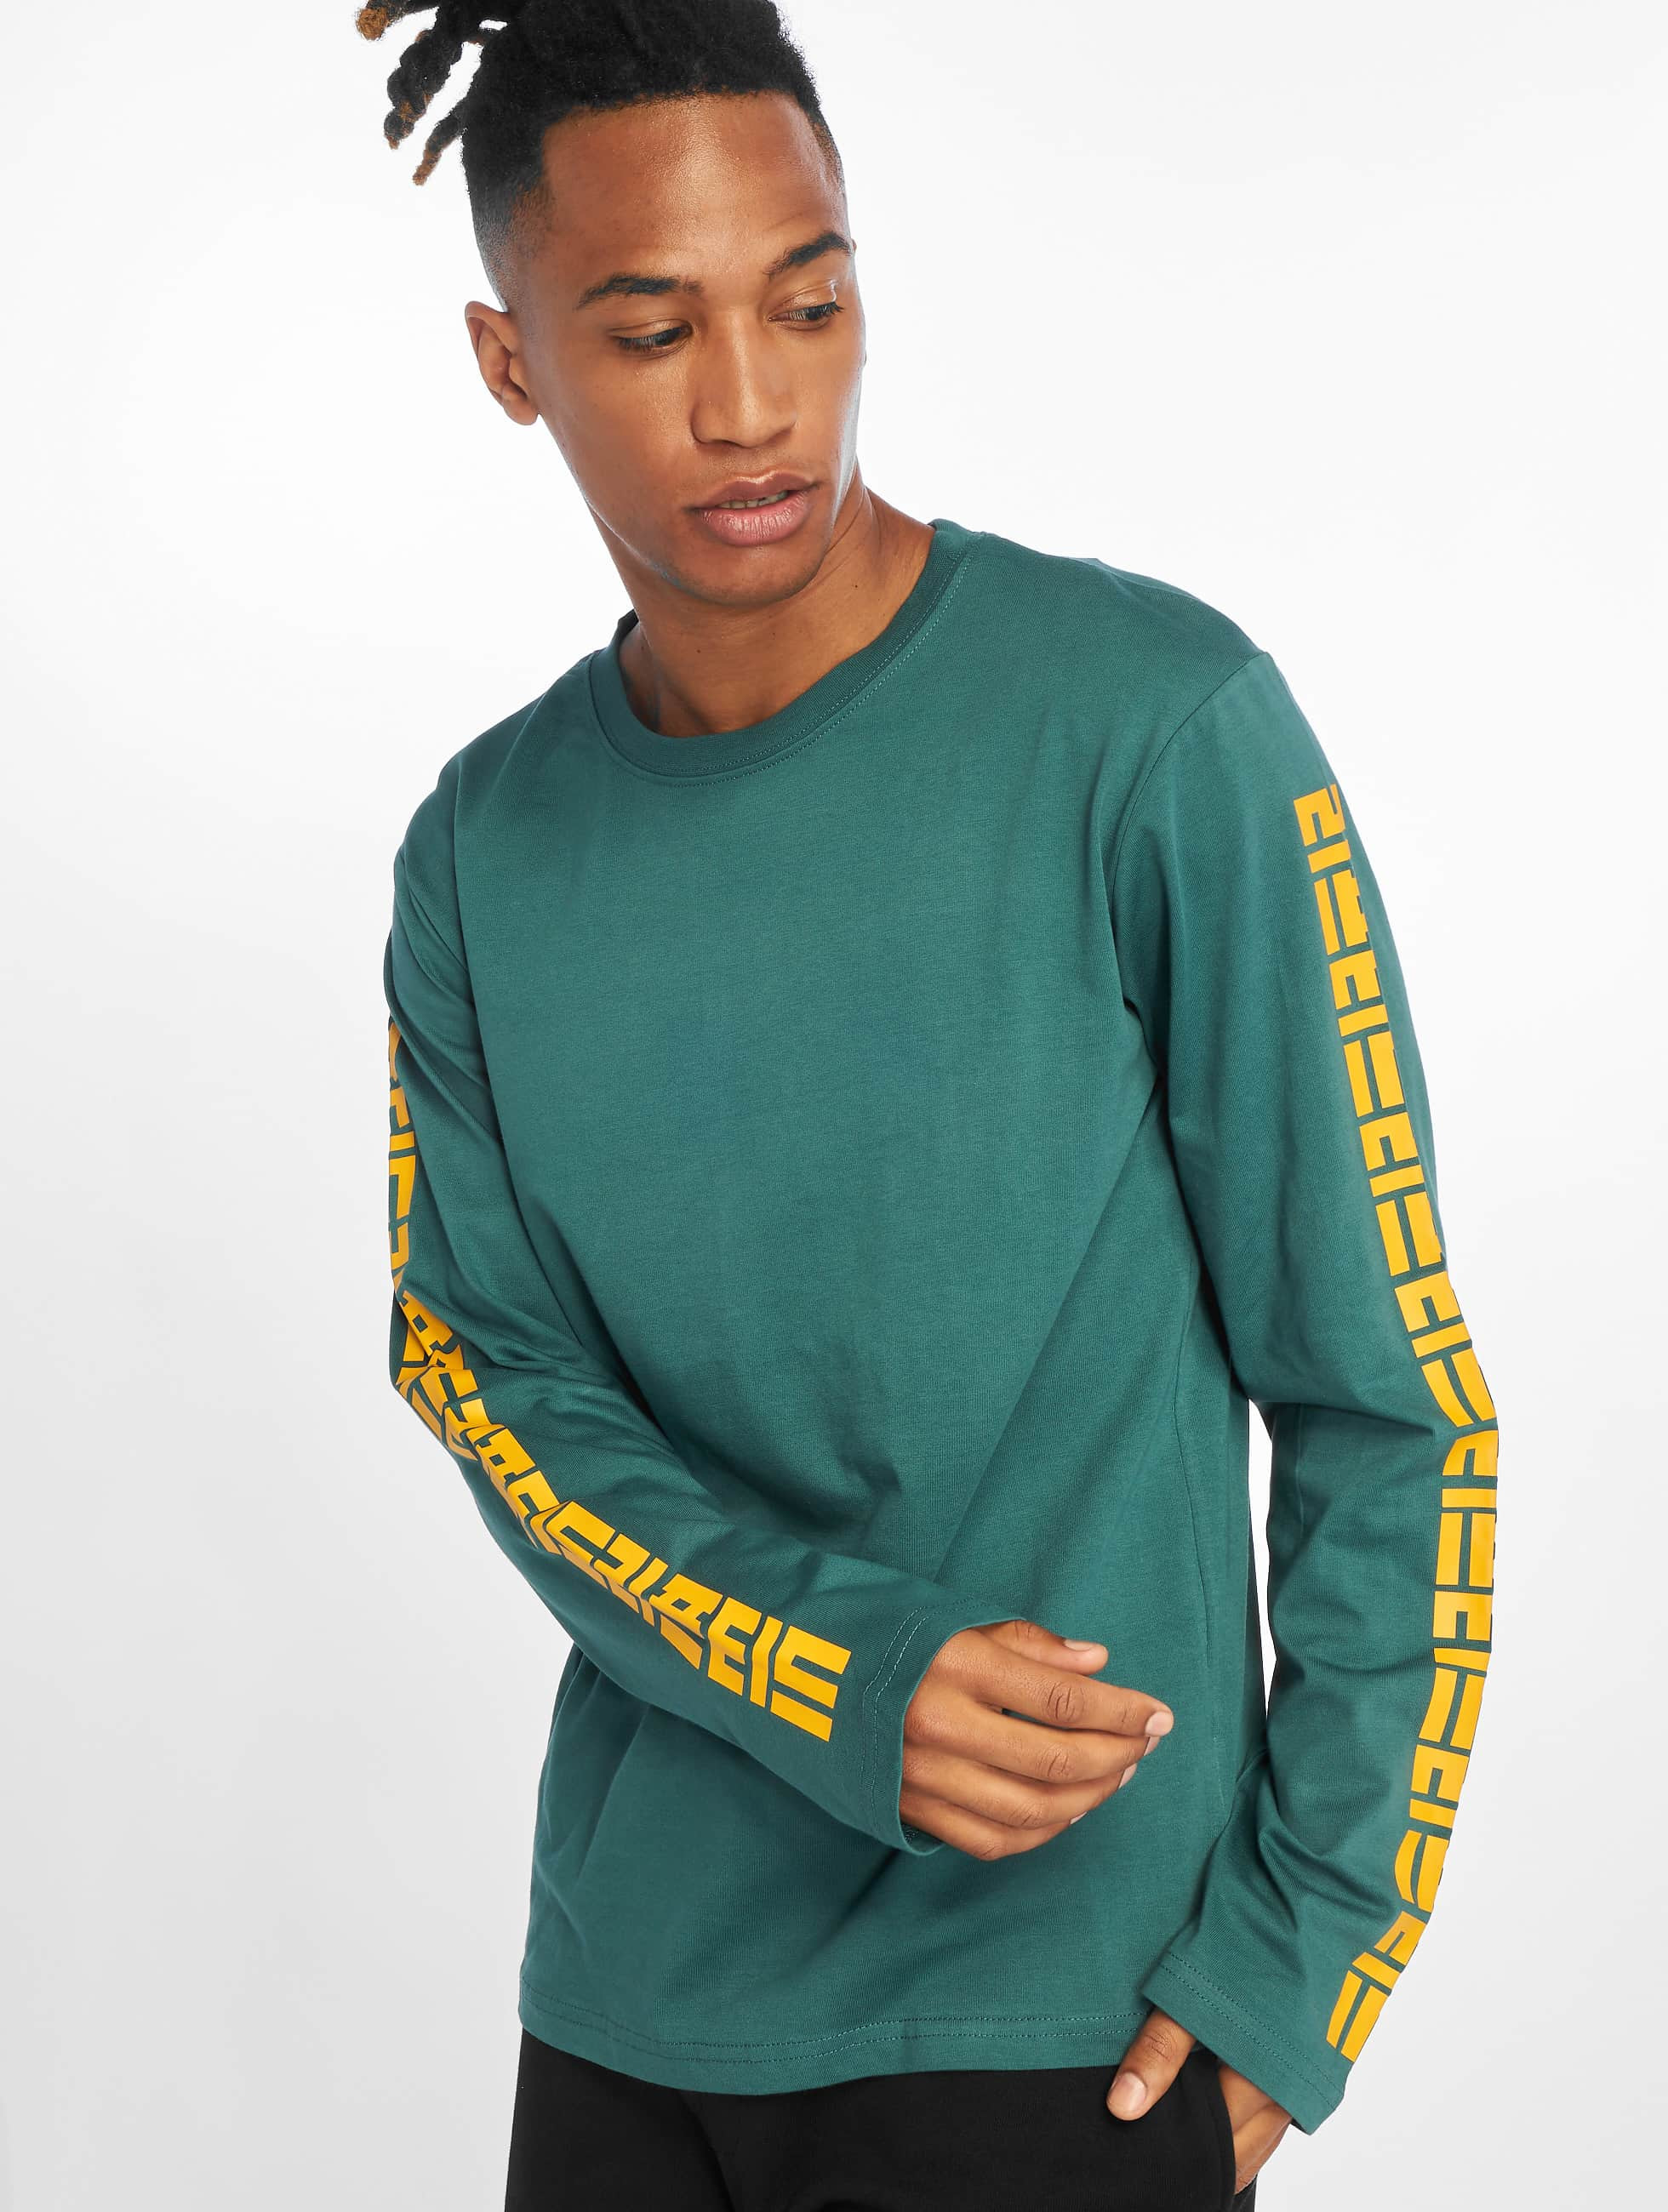 Lifted | Yun vert Homme T-Shirt manches longues